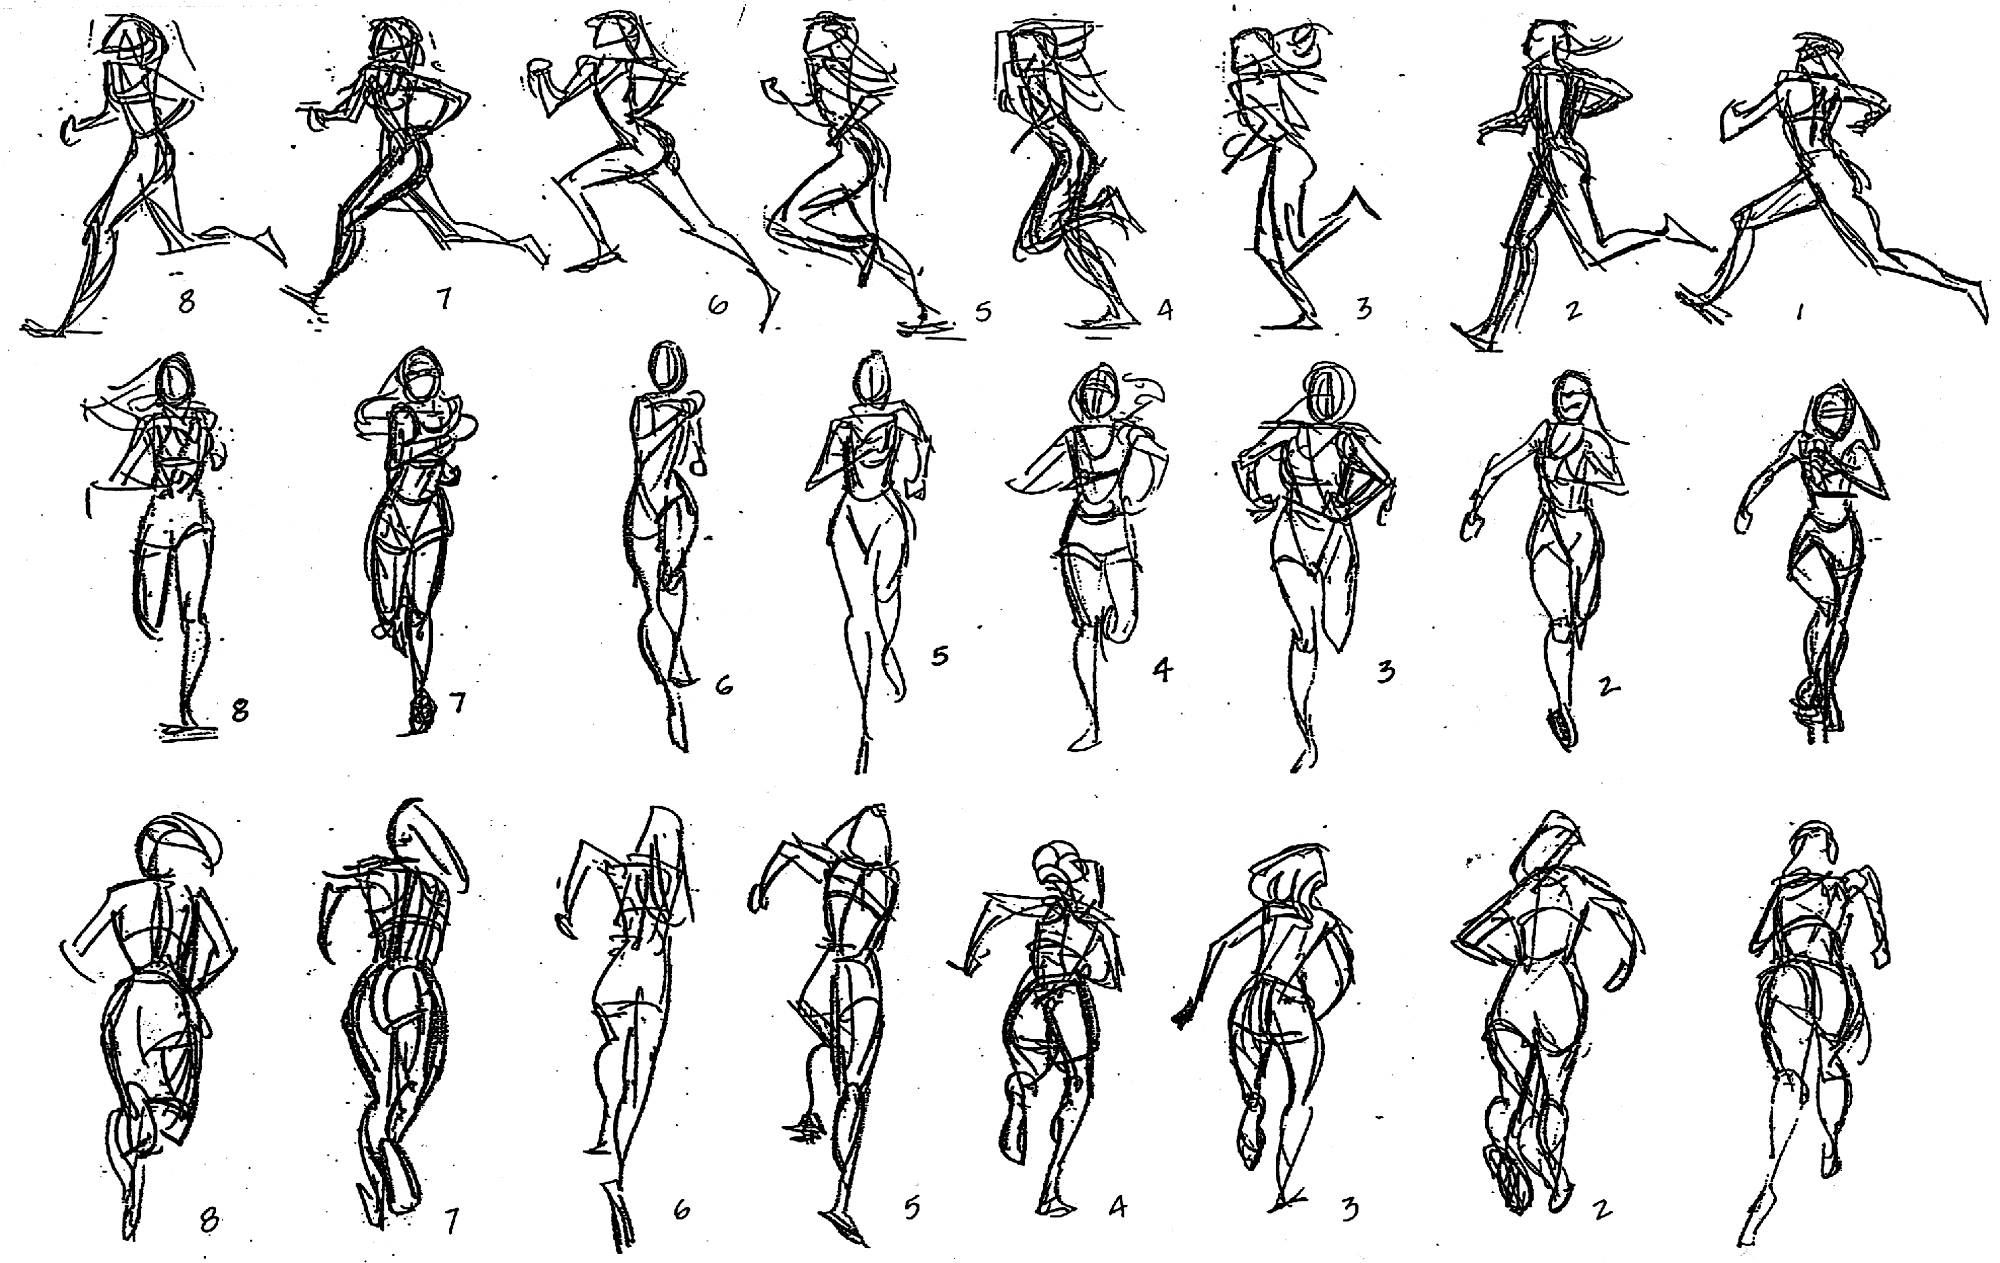 Anime Characters Running : Pocahontas s run in gestural studies posted on facebook